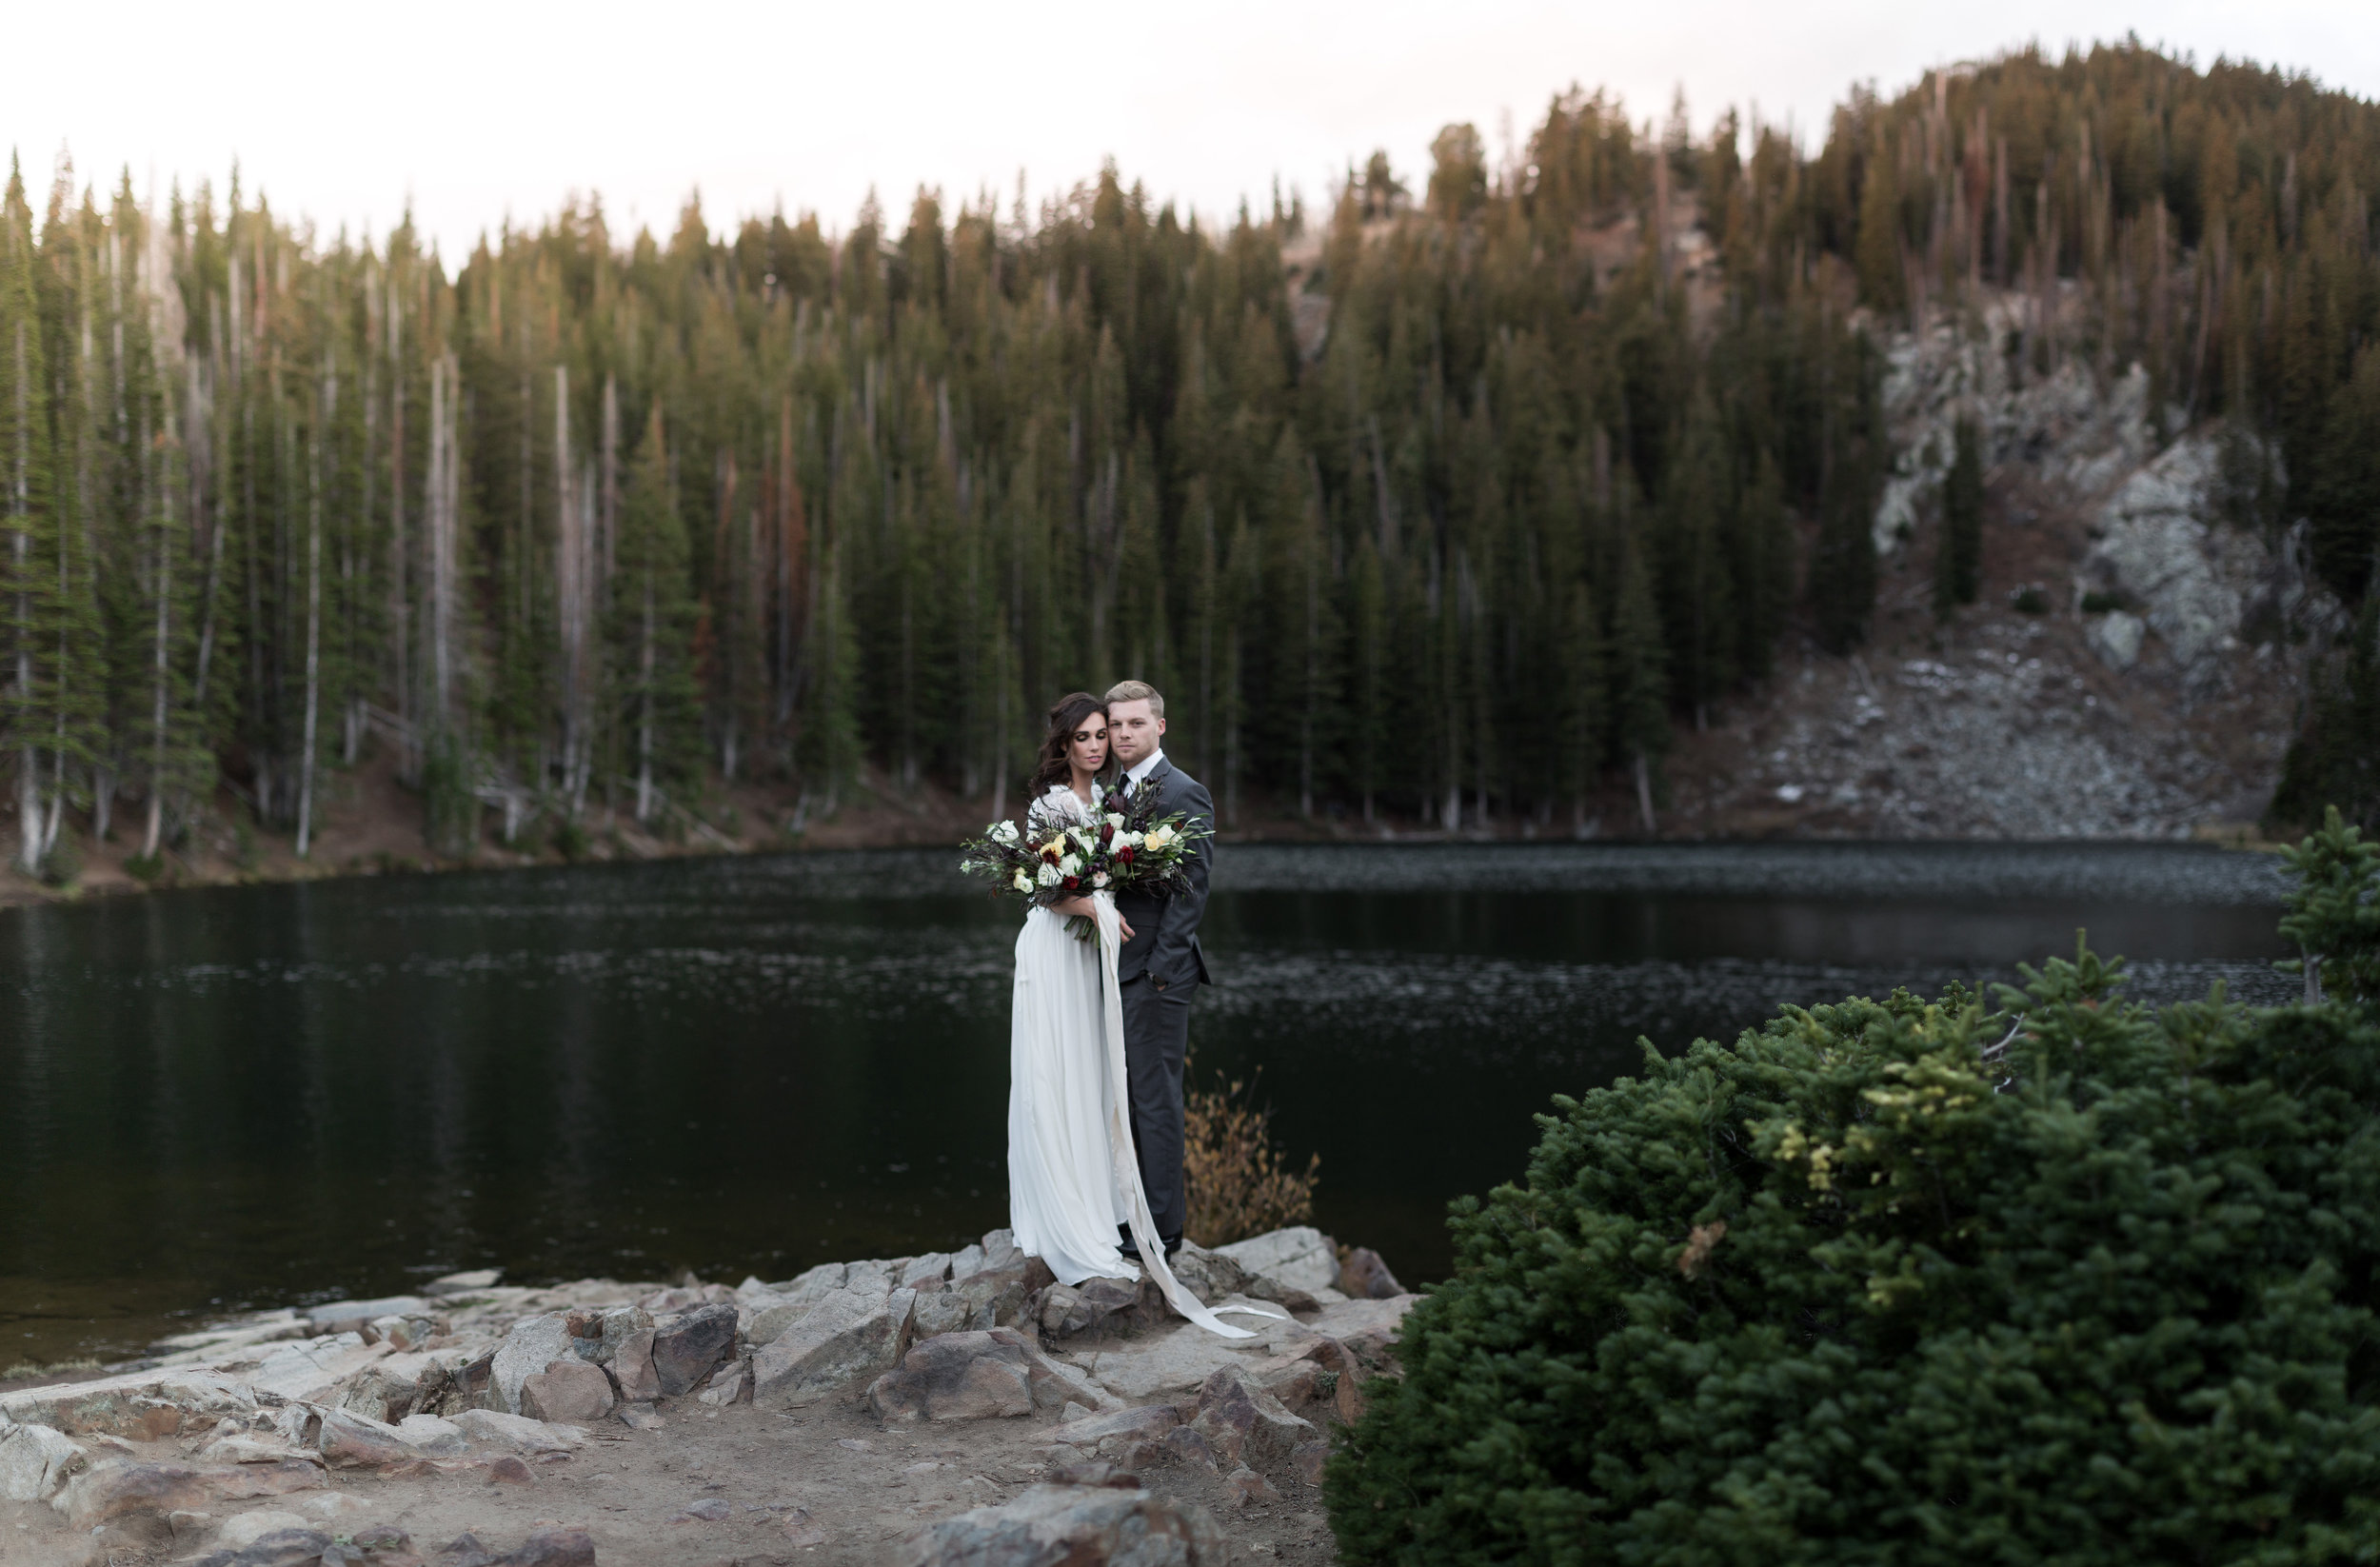 UtahValleyBrideShootTR2016 (17 of 110).jpg